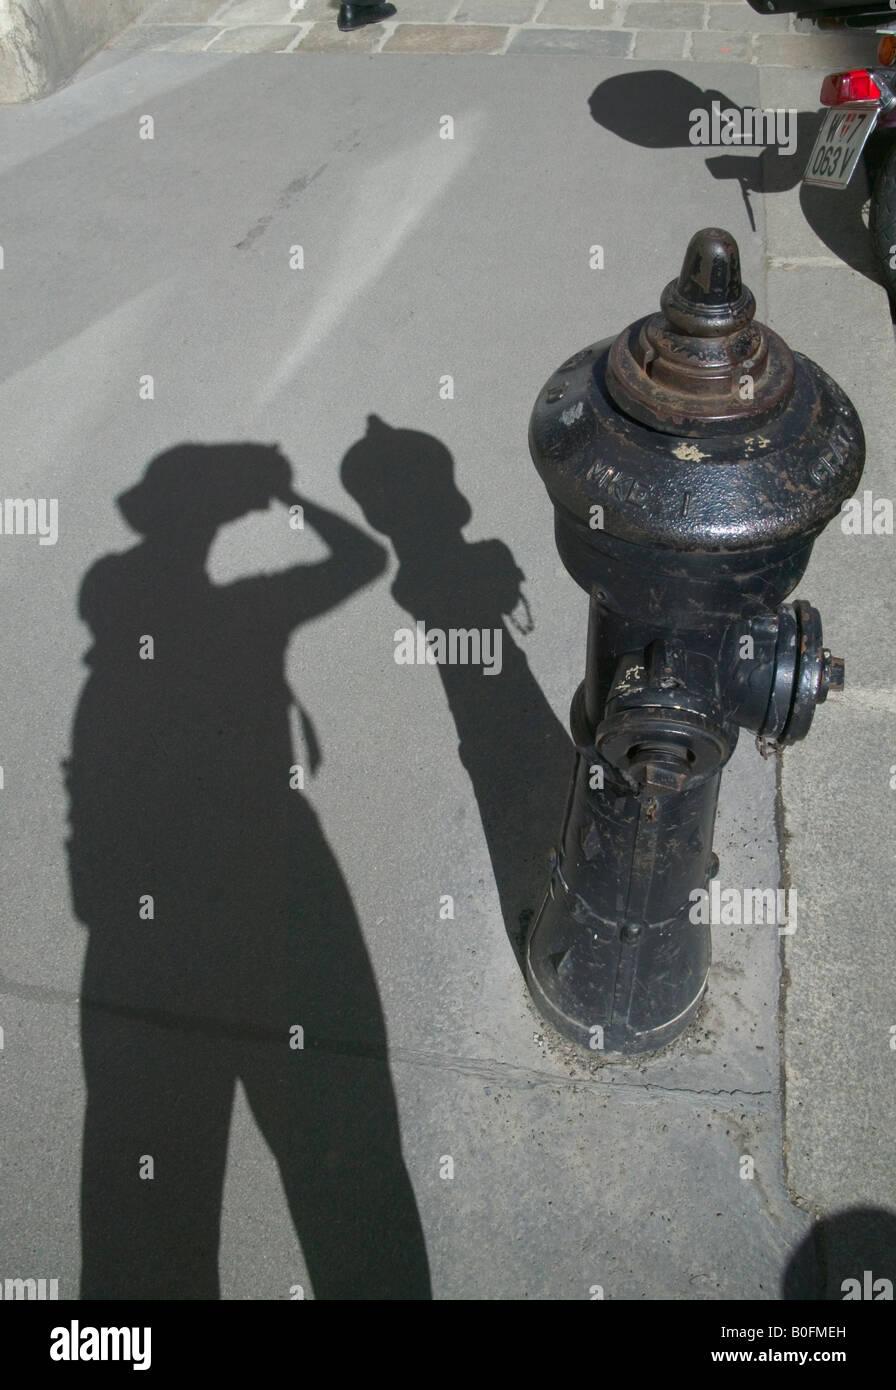 Shadow of tourist take picture with fire hydrant on the sidewalk Vienna Austria - Stock Image